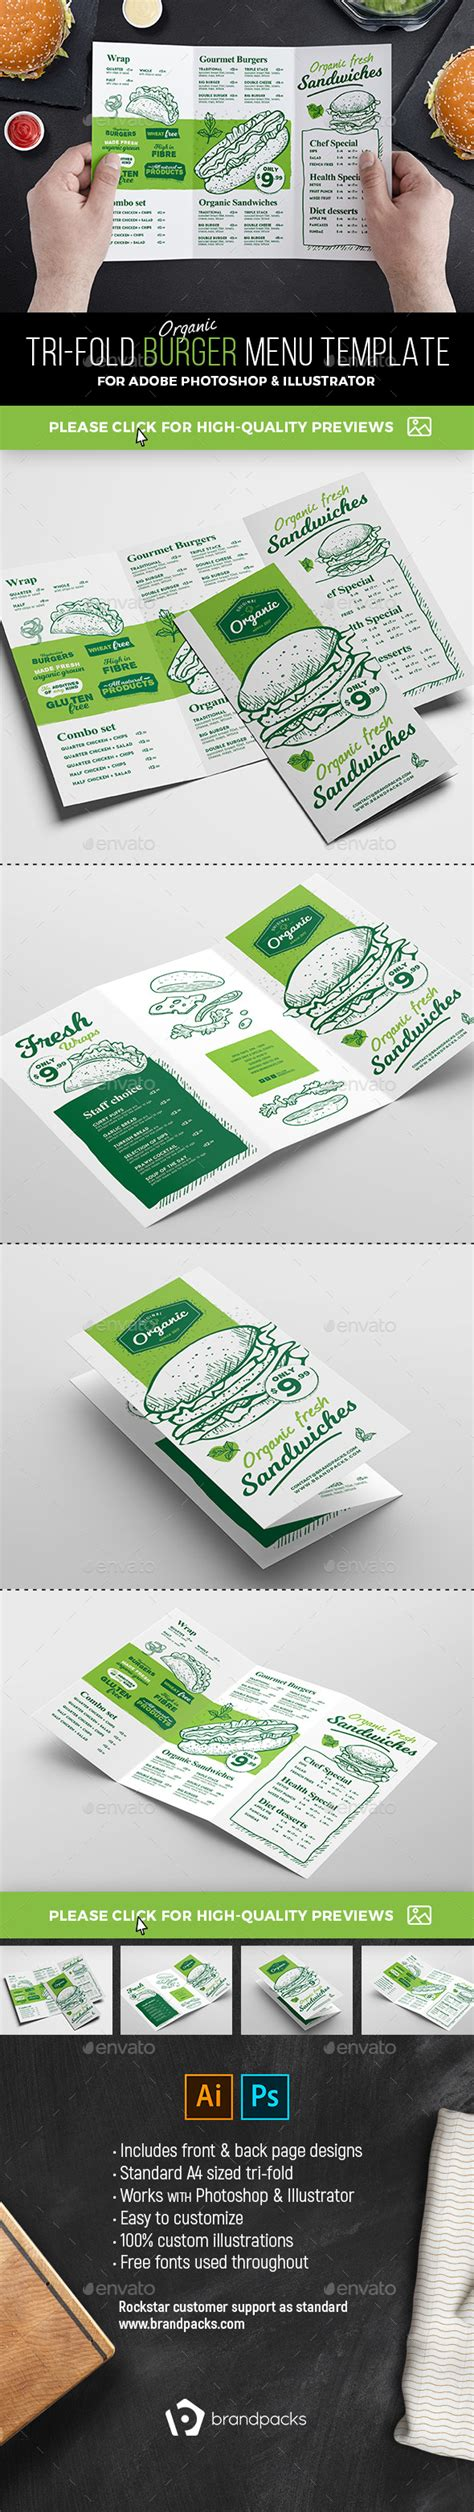 3 fold menu template tri fold burger menu template by brandpacks graphicriver